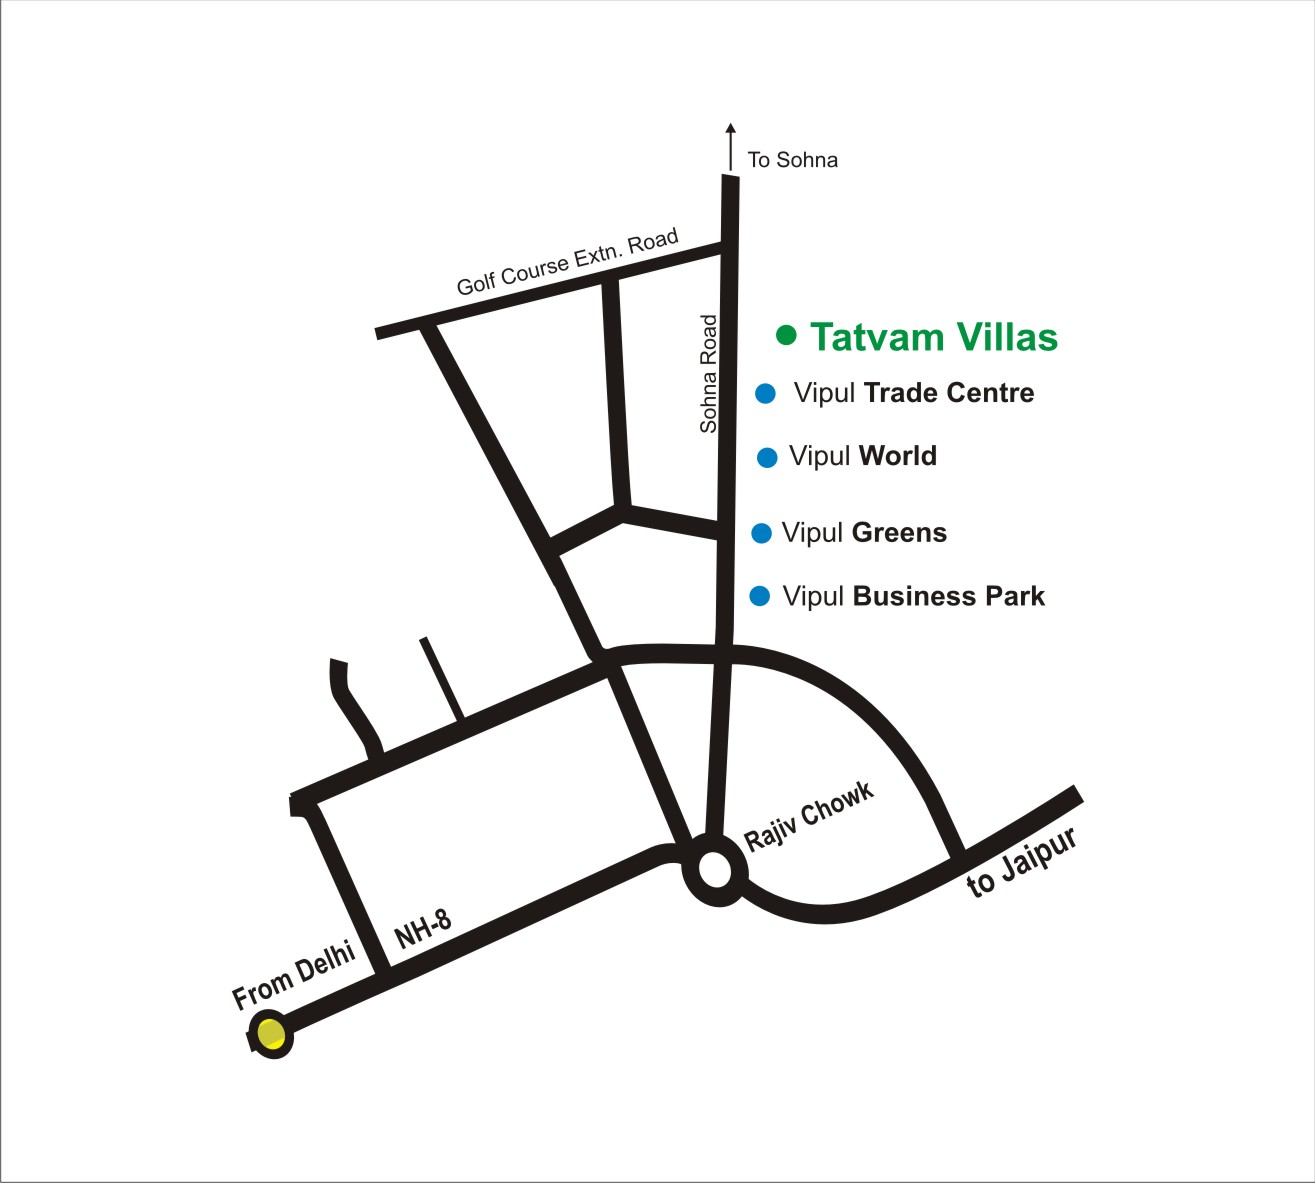 Location MapTatvam Villas